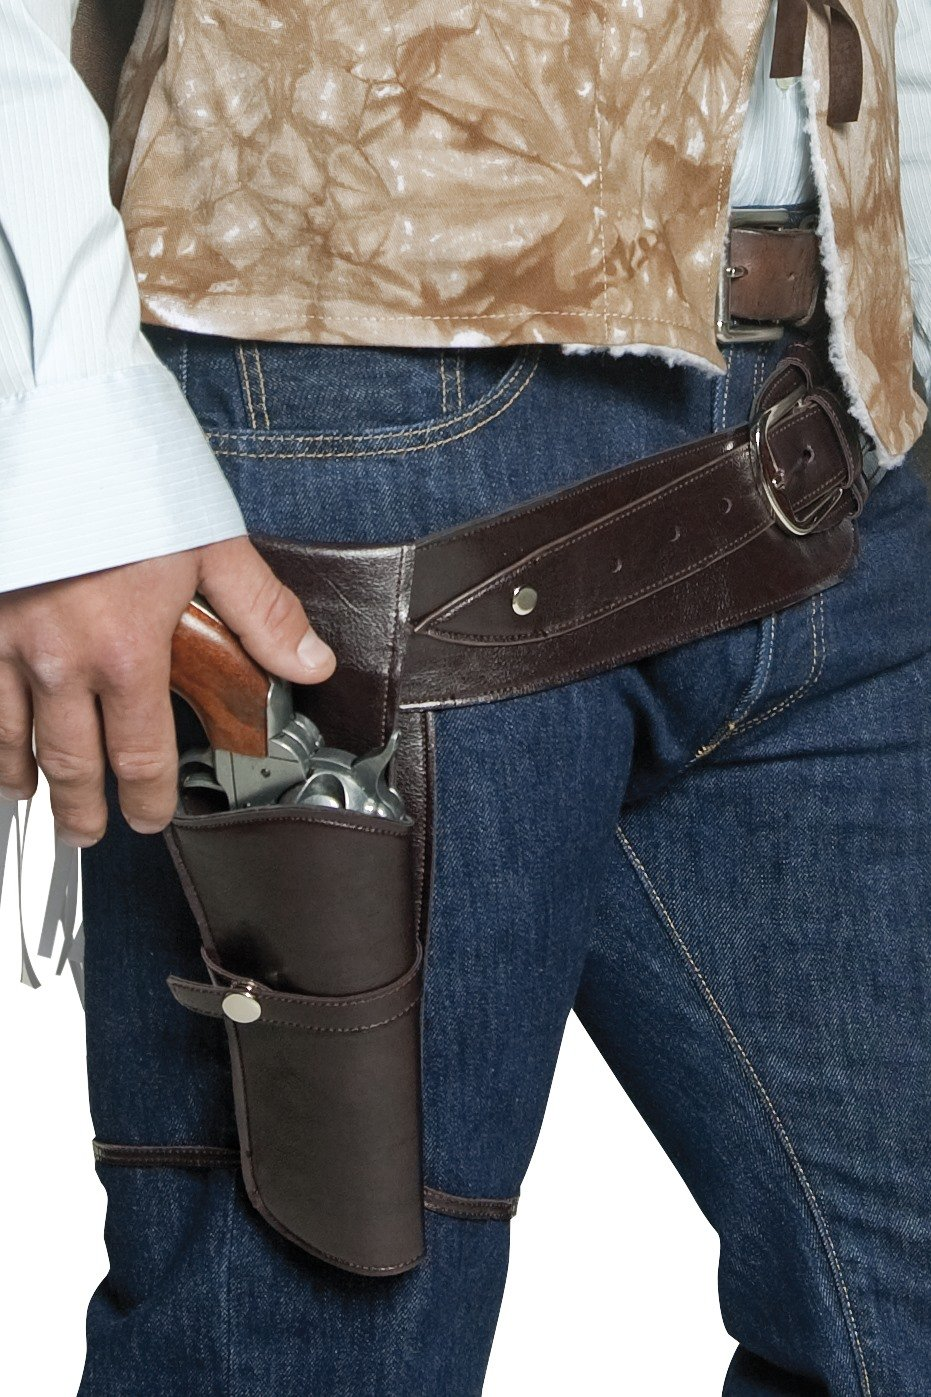 Smiffys Authentic Western Wandering Gunman Belt & Holster